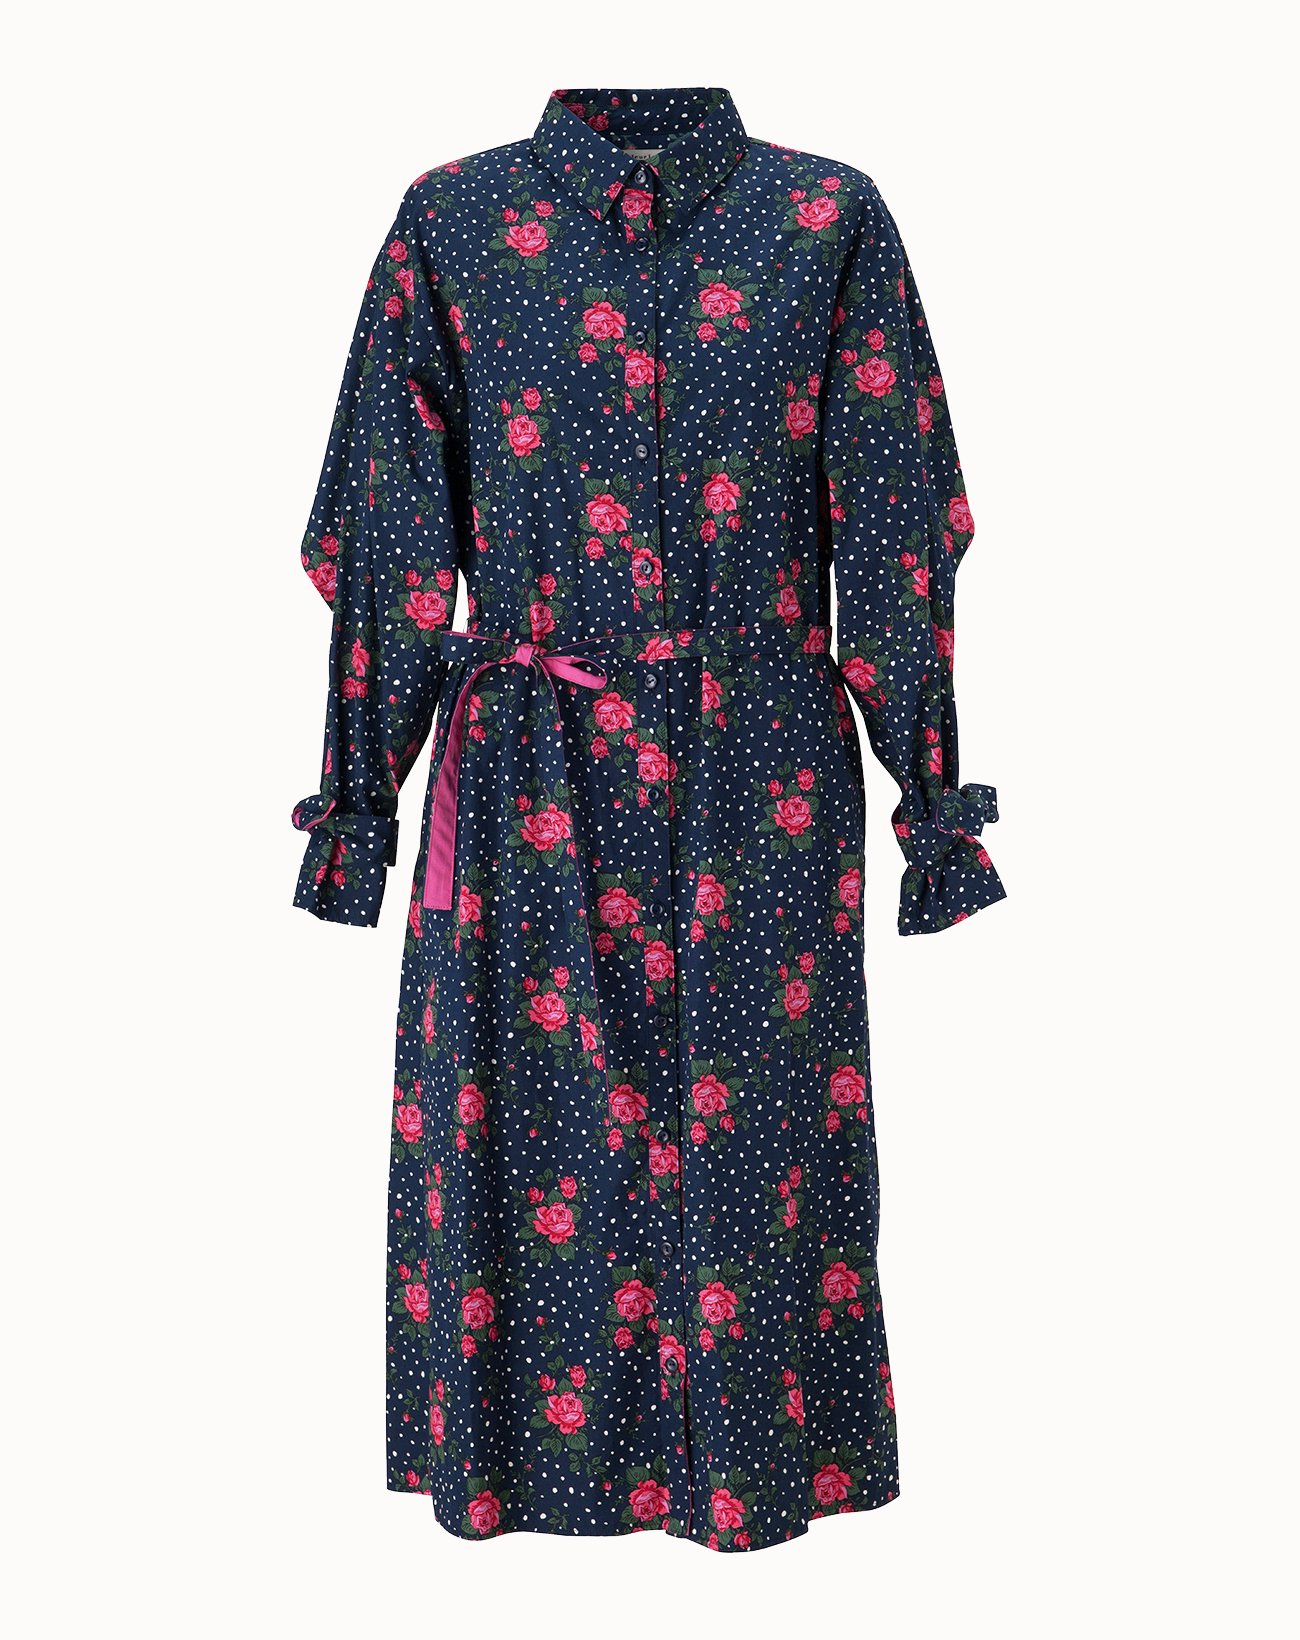 leur logette - Dot Rose Printed Cotton Dress - Navy